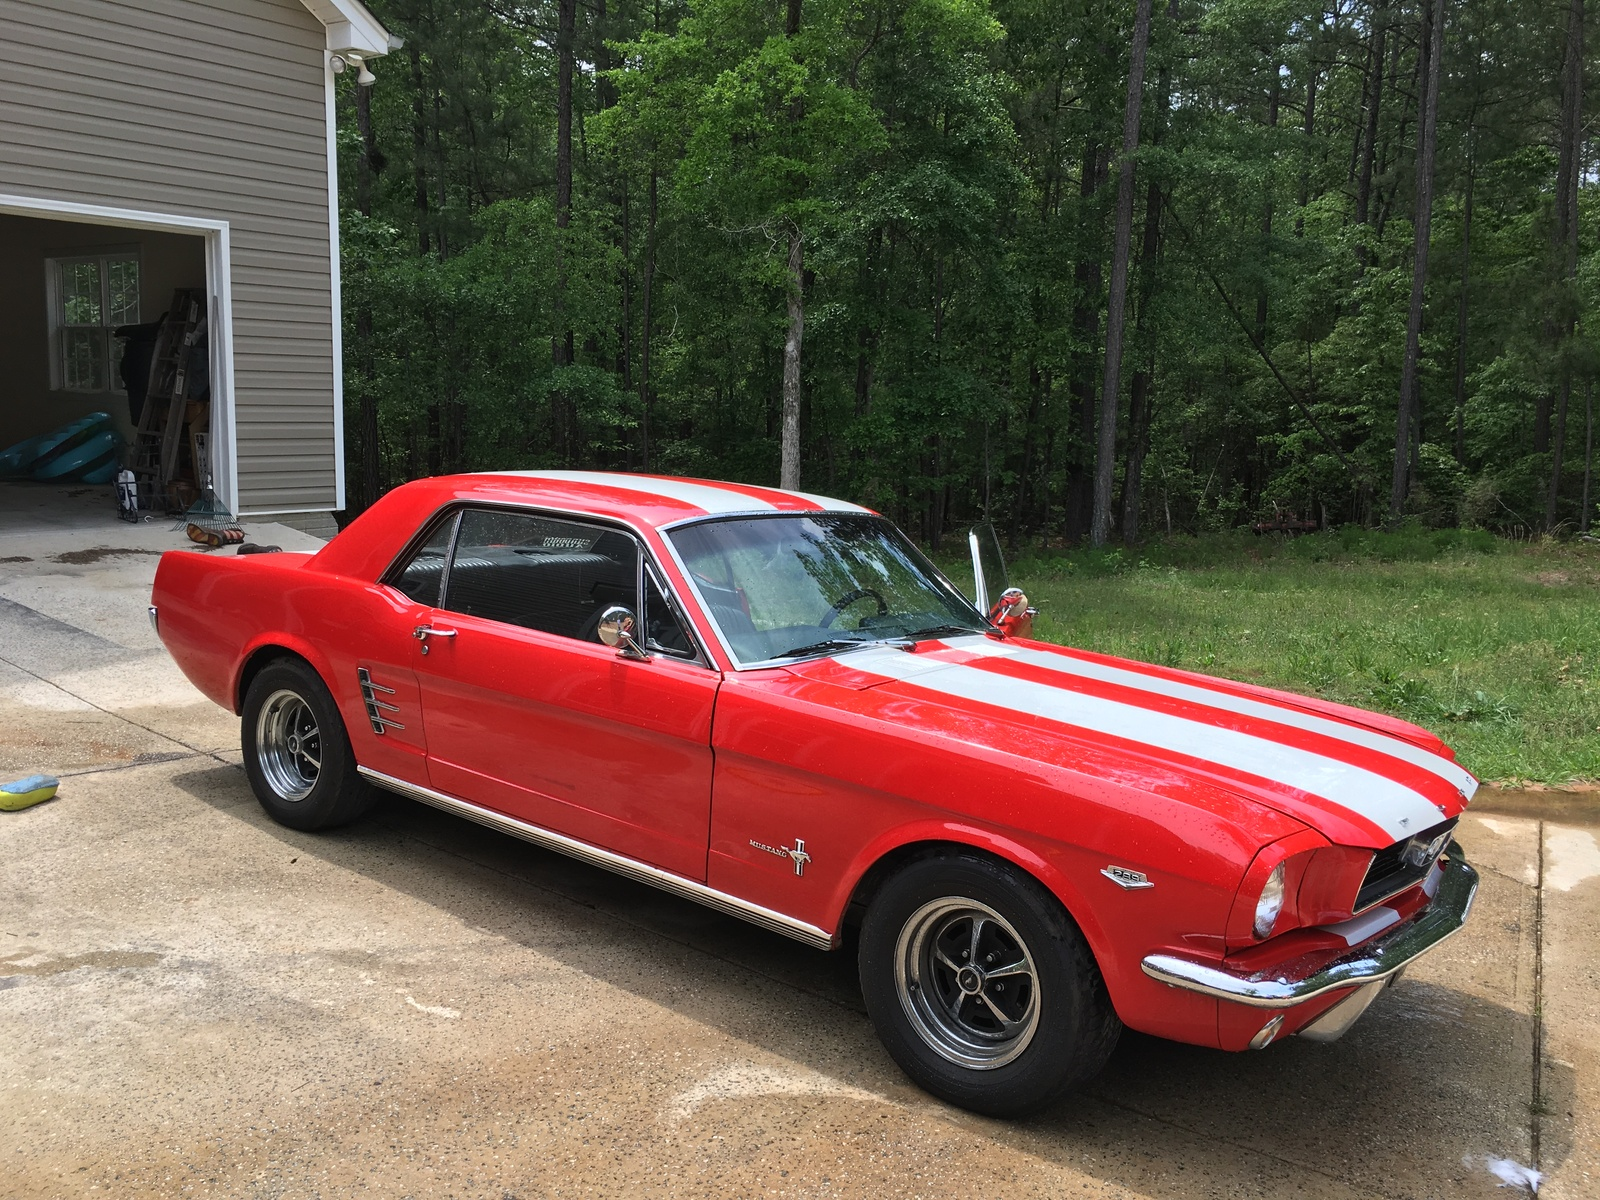 I have a 66 with 51000 original miles excellent condition exterior and interior 289 runs great whats the value